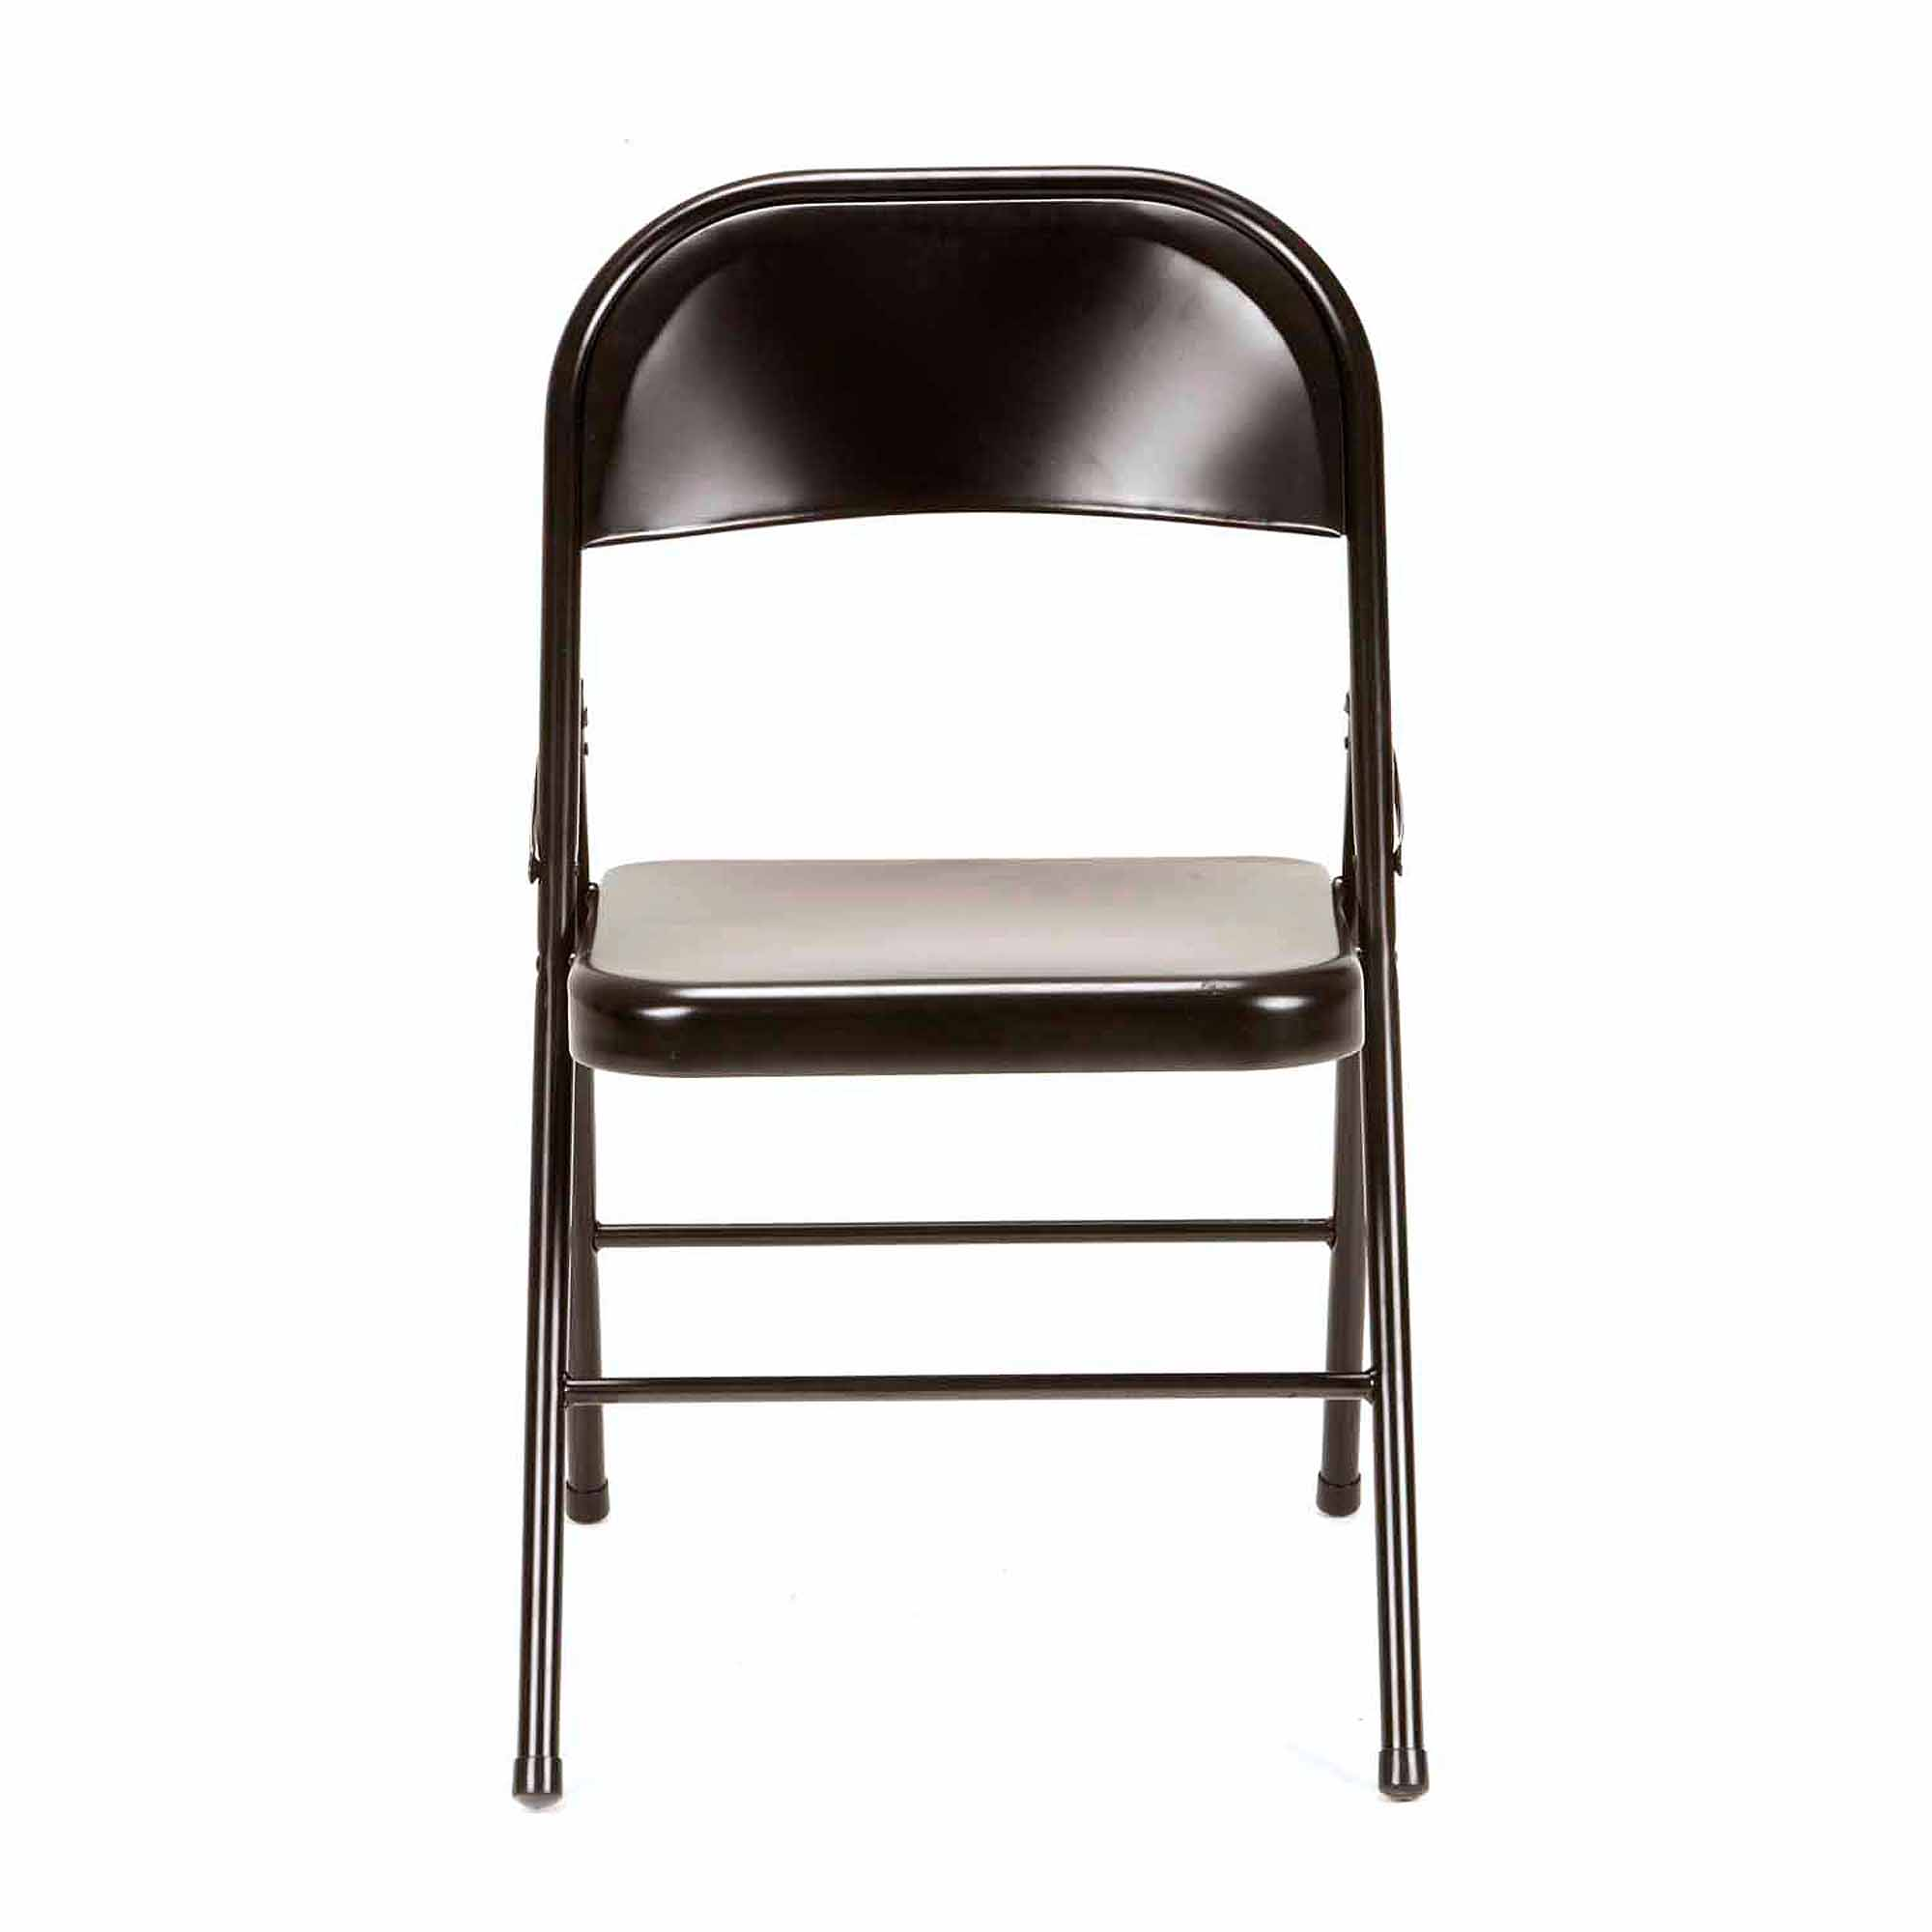 Mainstays Steel Chair, Set of 4, Multiple Colors